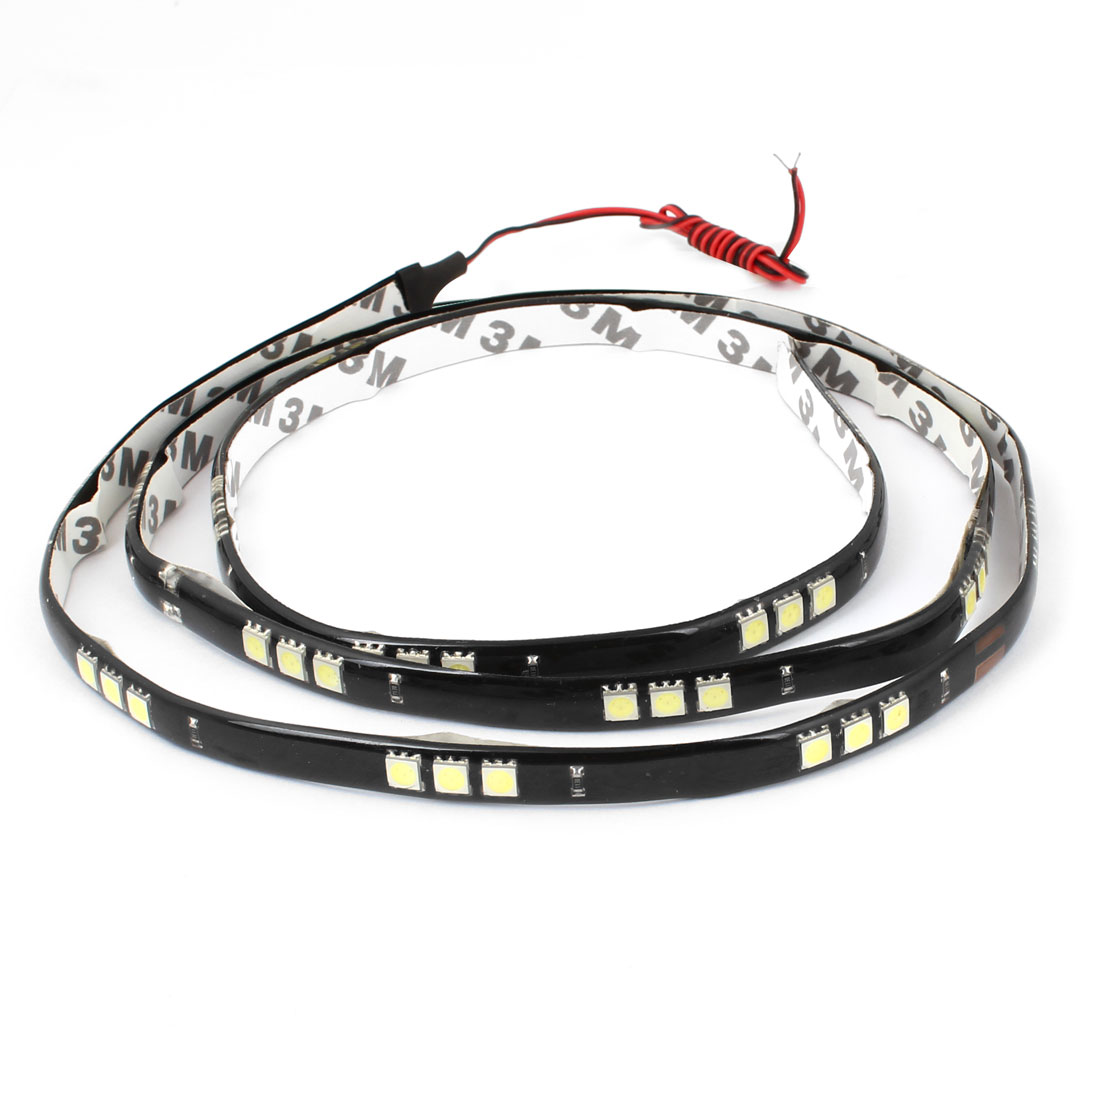 Car DC 12V Interior White 5050 SMD 60 LED Flexible Strip Light Lamp 120cm Long